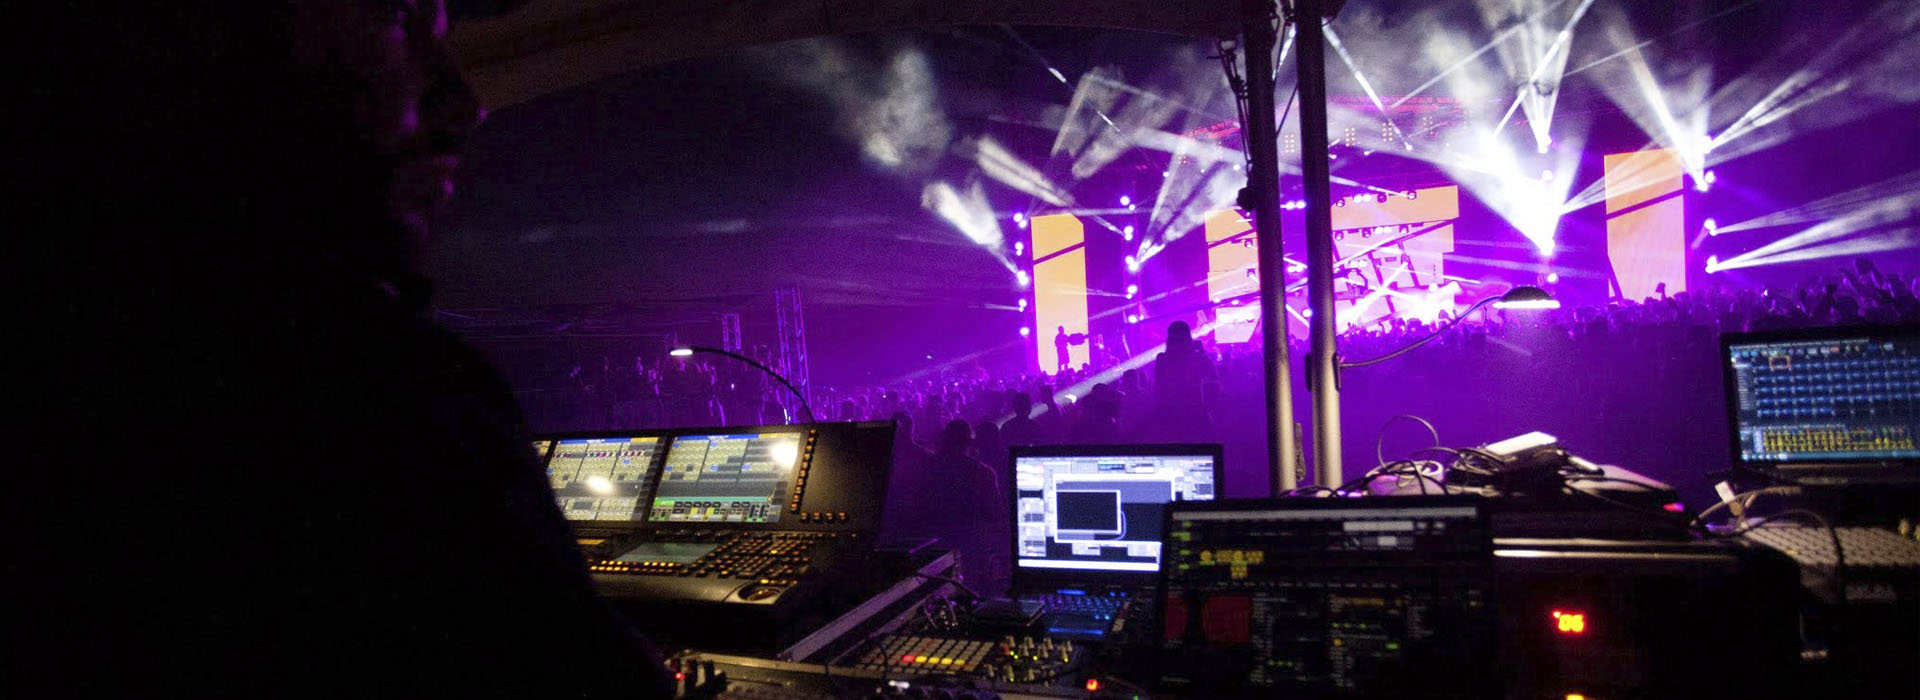 ProTech_Live_Production_Northwest_Live_Sound_Lighting